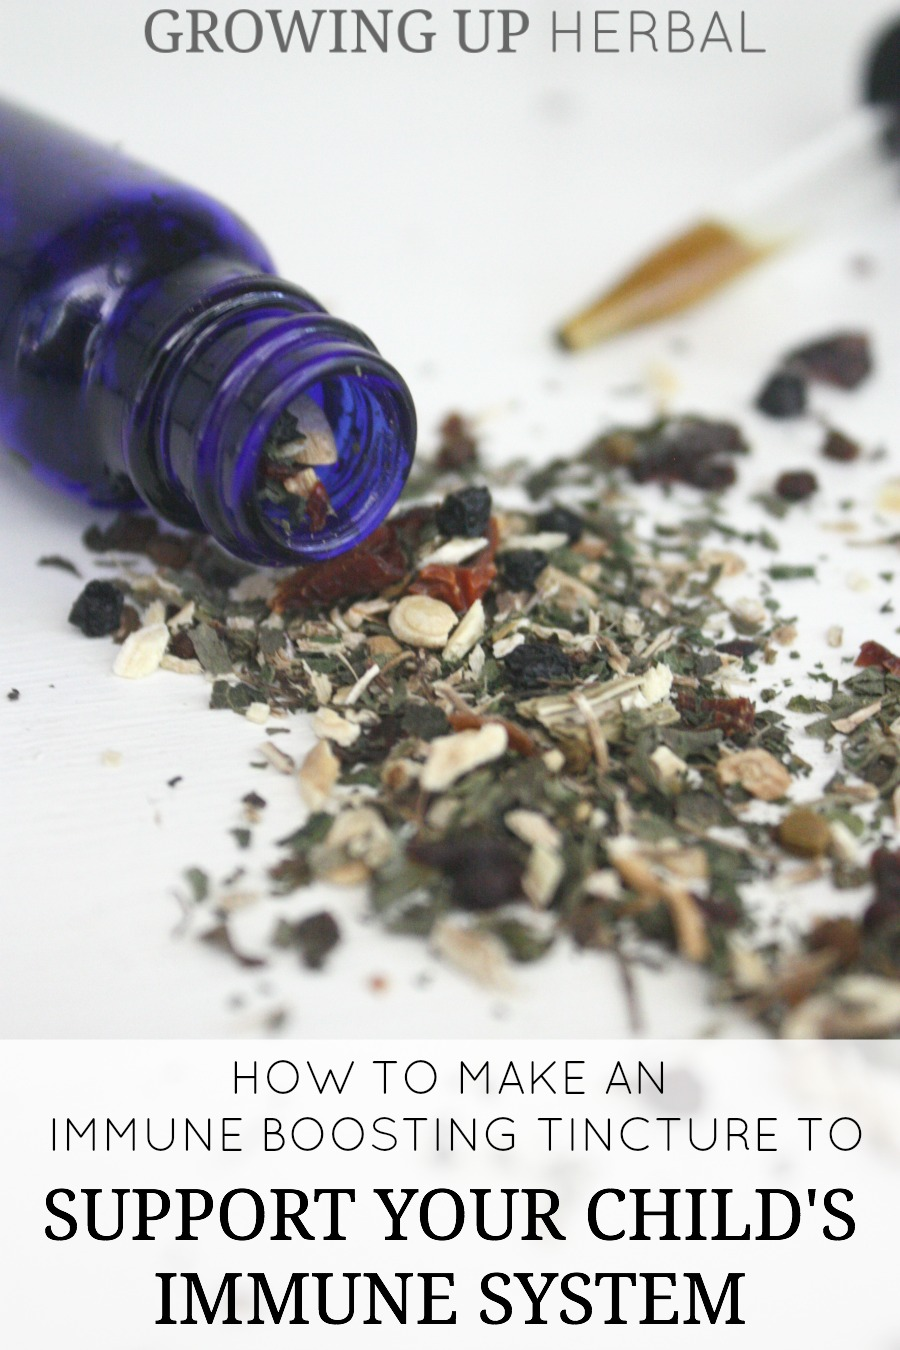 How To Make An Immune Boosting Tincture To Support Your Child's Immune System | Growing Up Herbal | Learn how to make an immune boosting tincture for your kids!